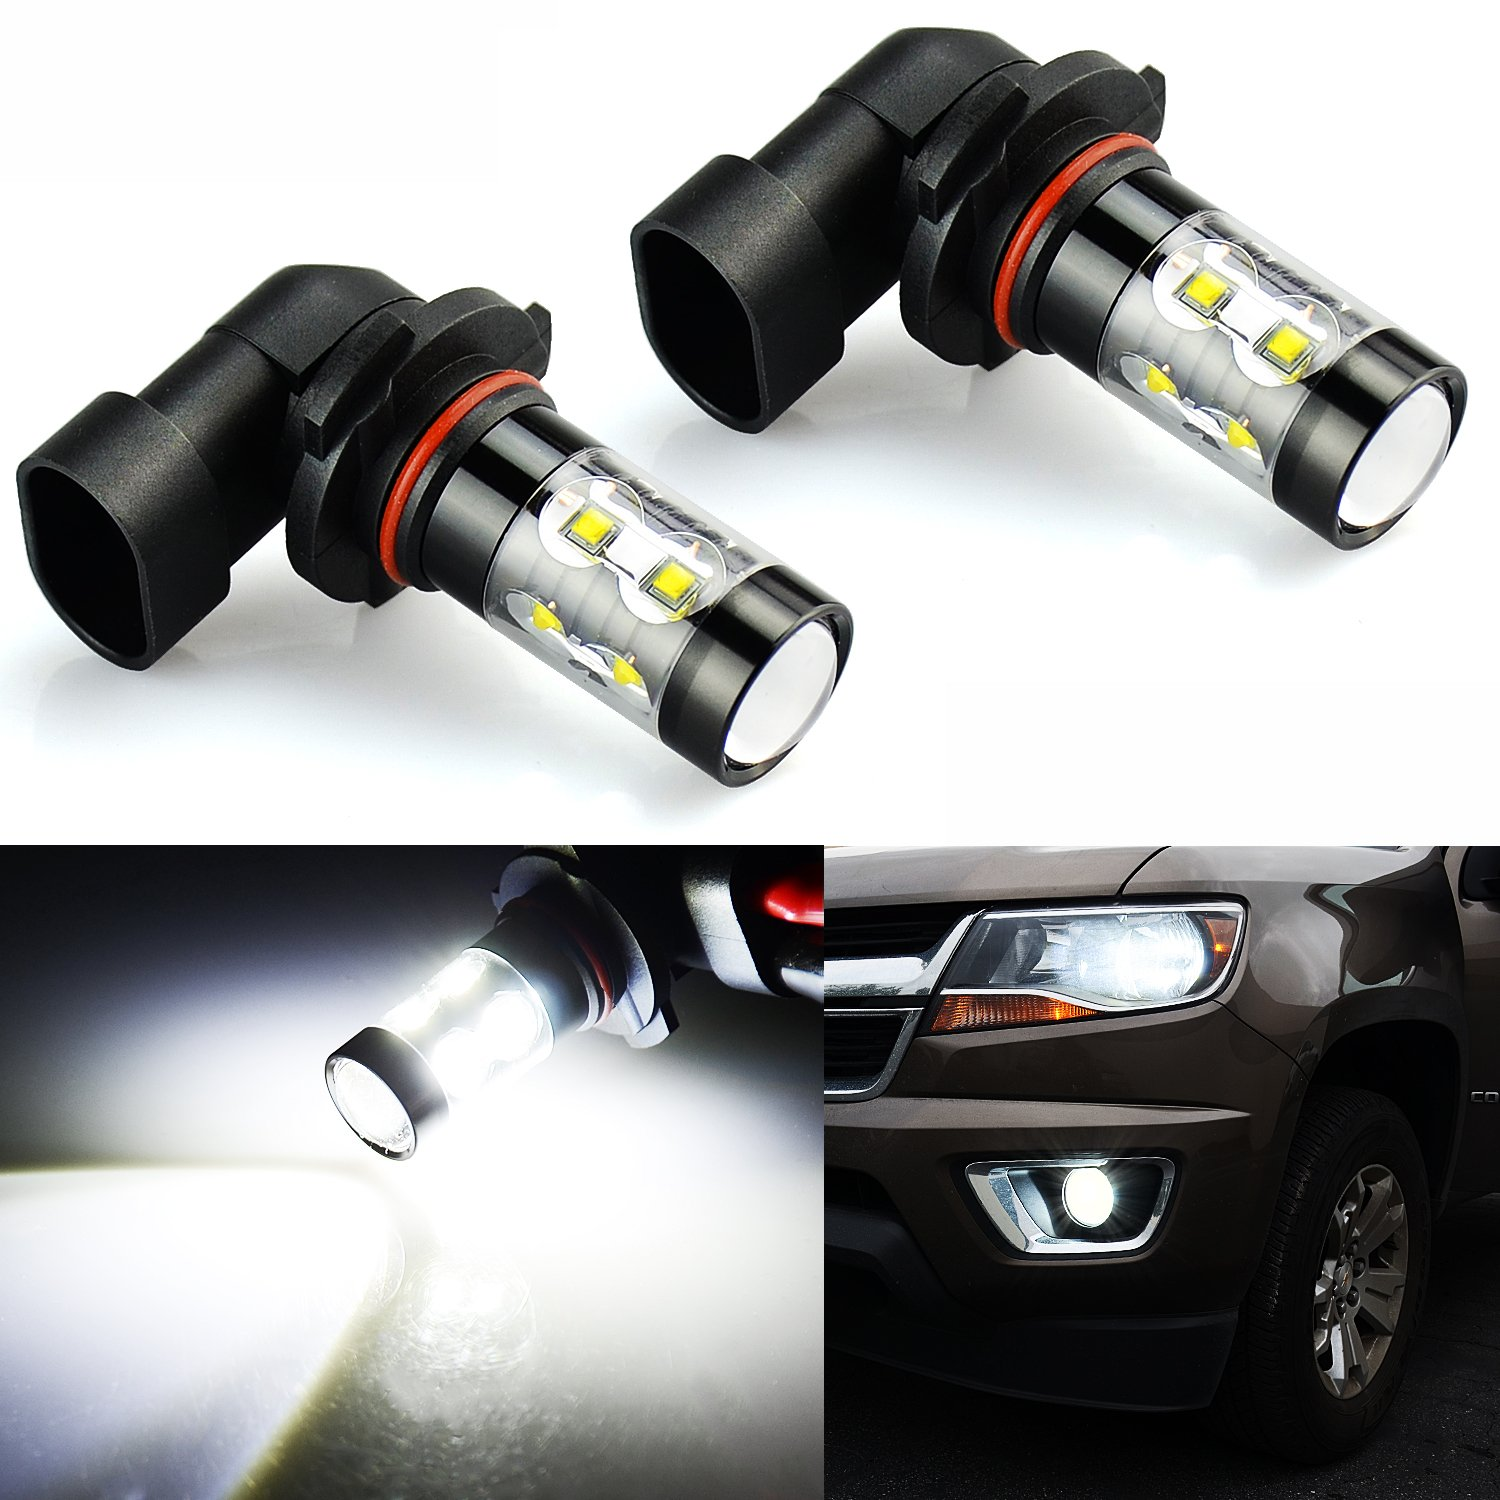 JDM ASTAR Extremely Bright 2600 Lumens Max 50W High Power H10 9145 LED Fog Light Bulbs for DRL or Fog Lights, Xenon White